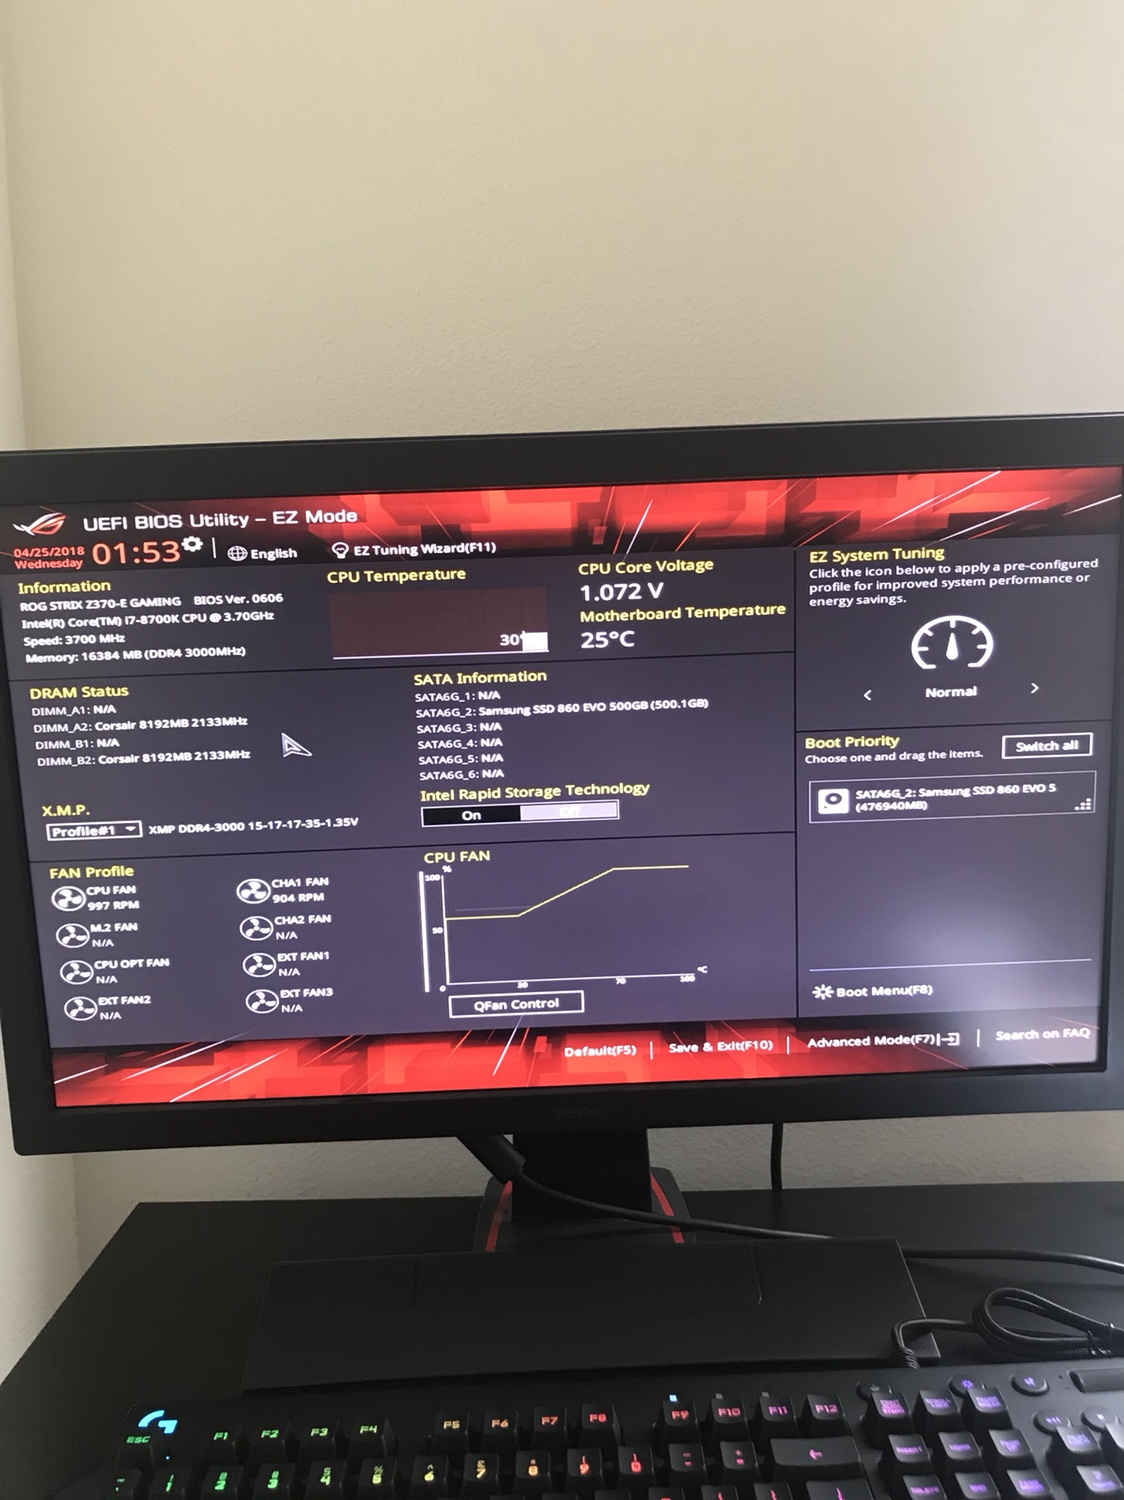 Bios showing 2133hz